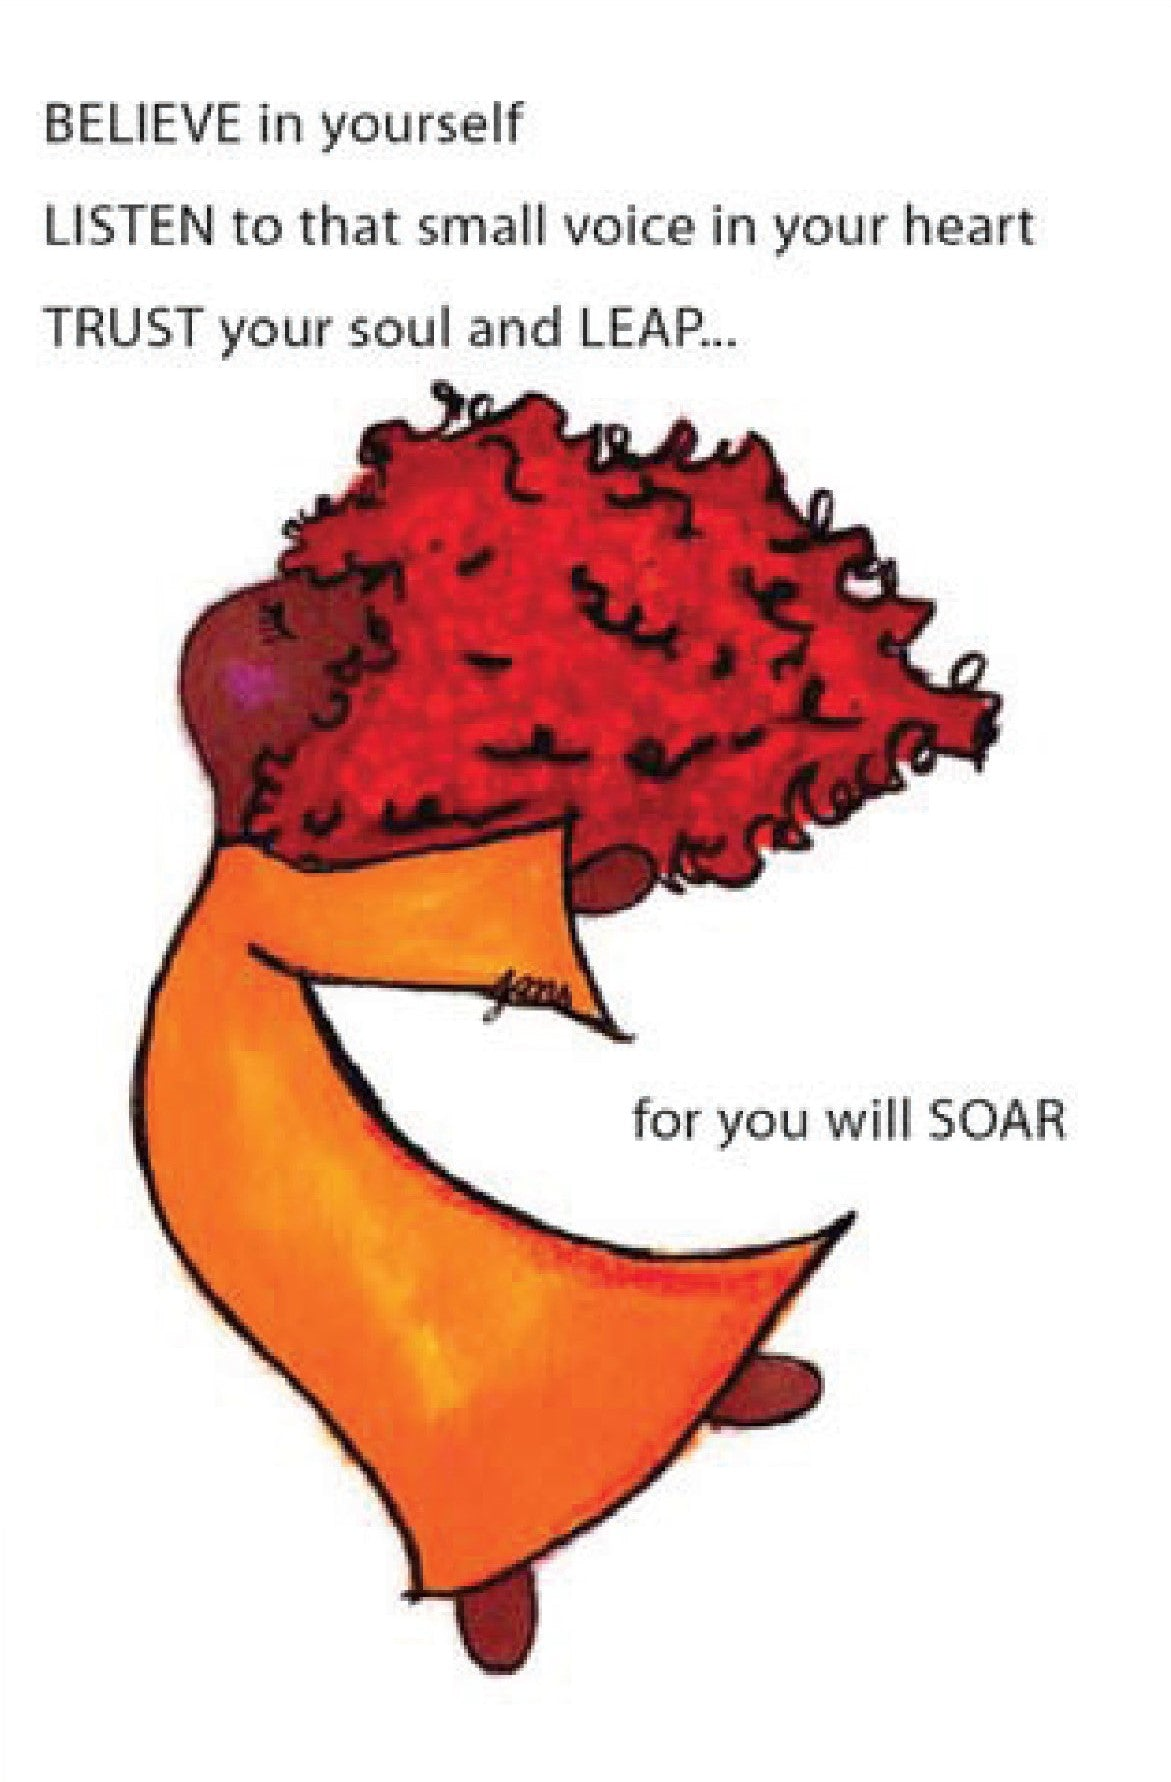 Picture of Soar card by LITTLE FEET'S OPUS